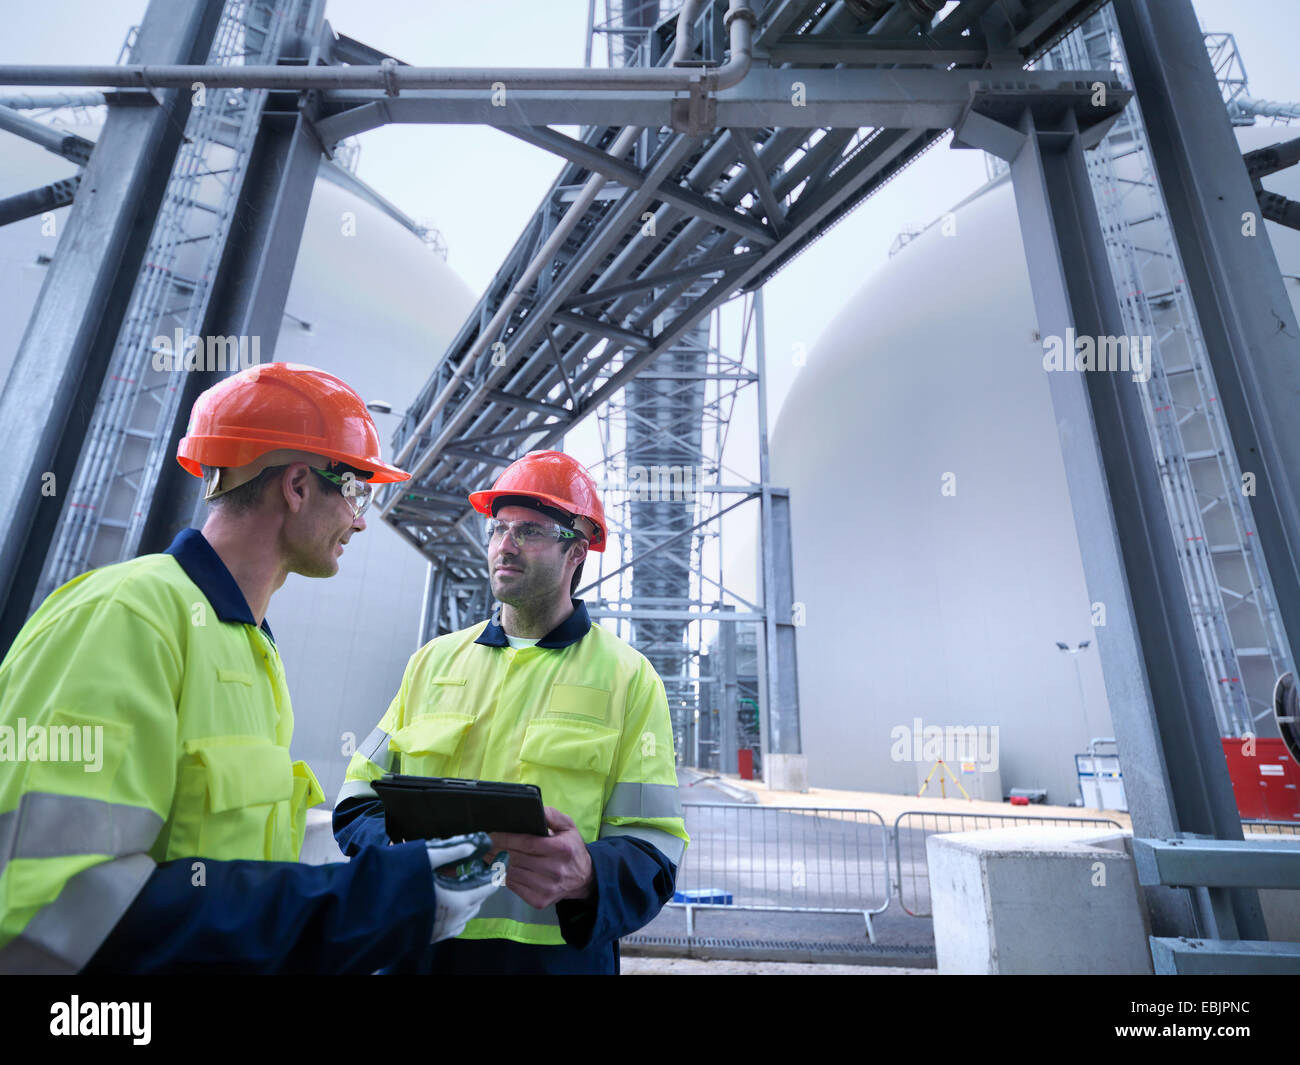 Workers using digital tablet at biomass facility - Stock Image